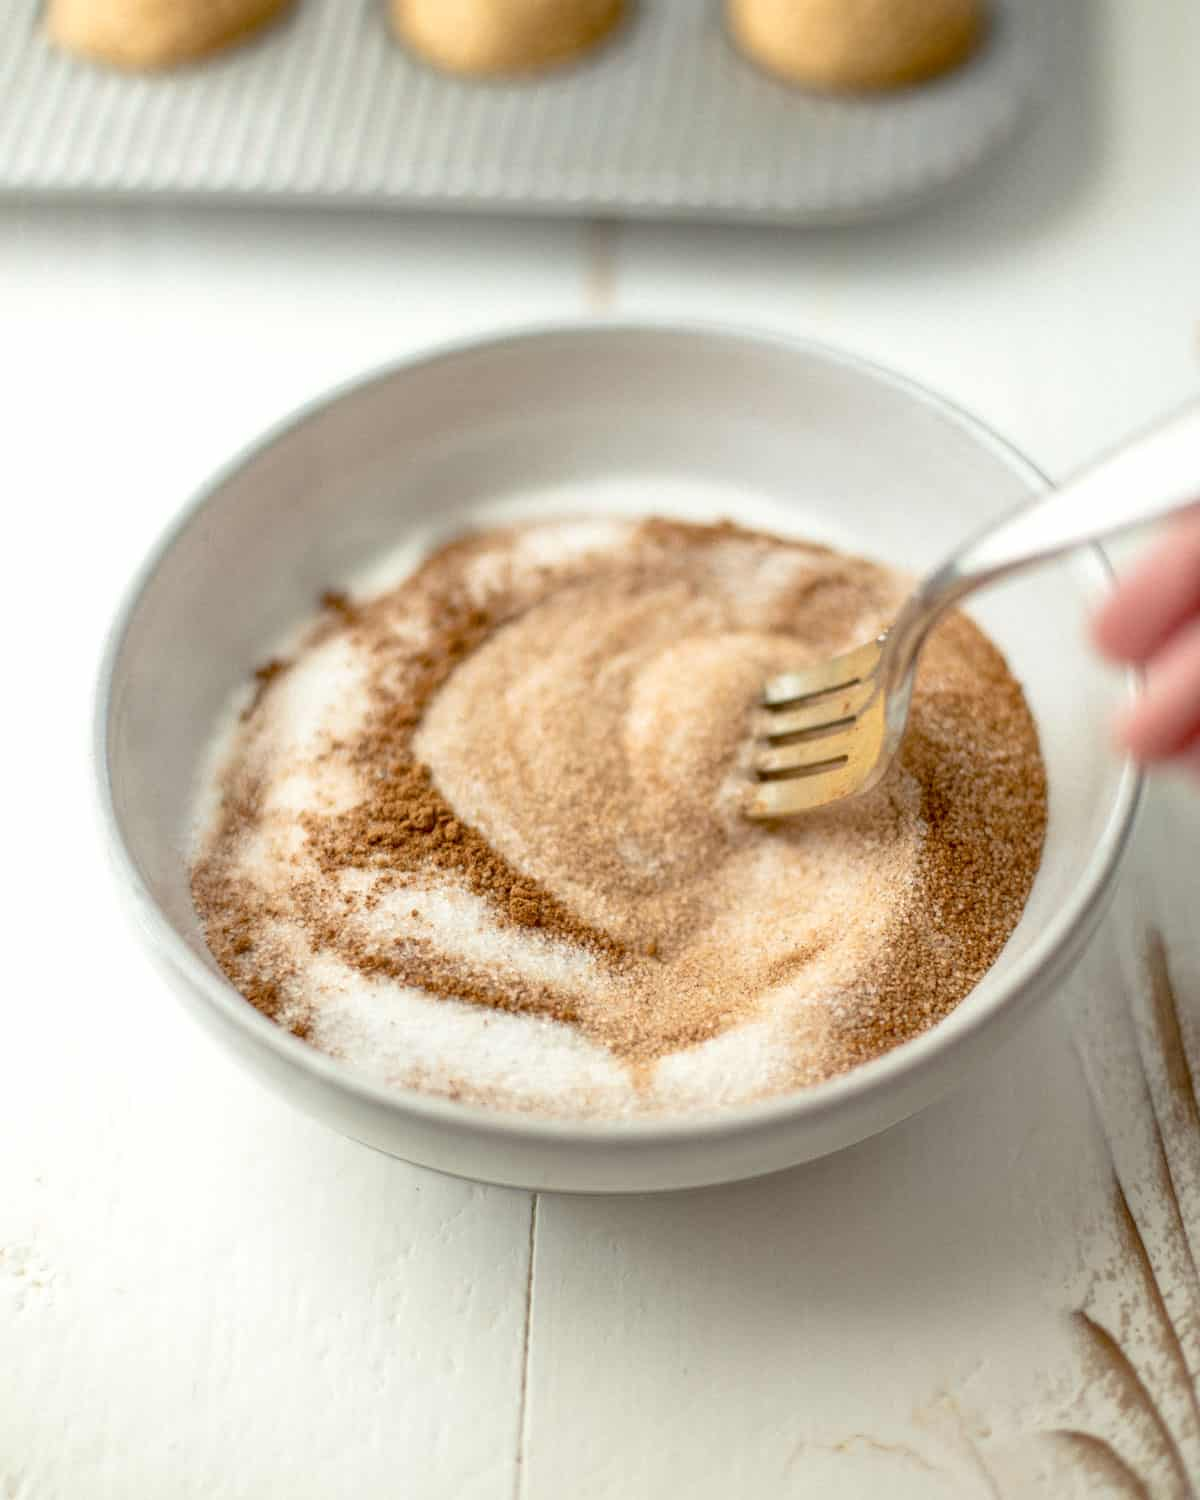 mixing cinnamon and sugar in a white bowl